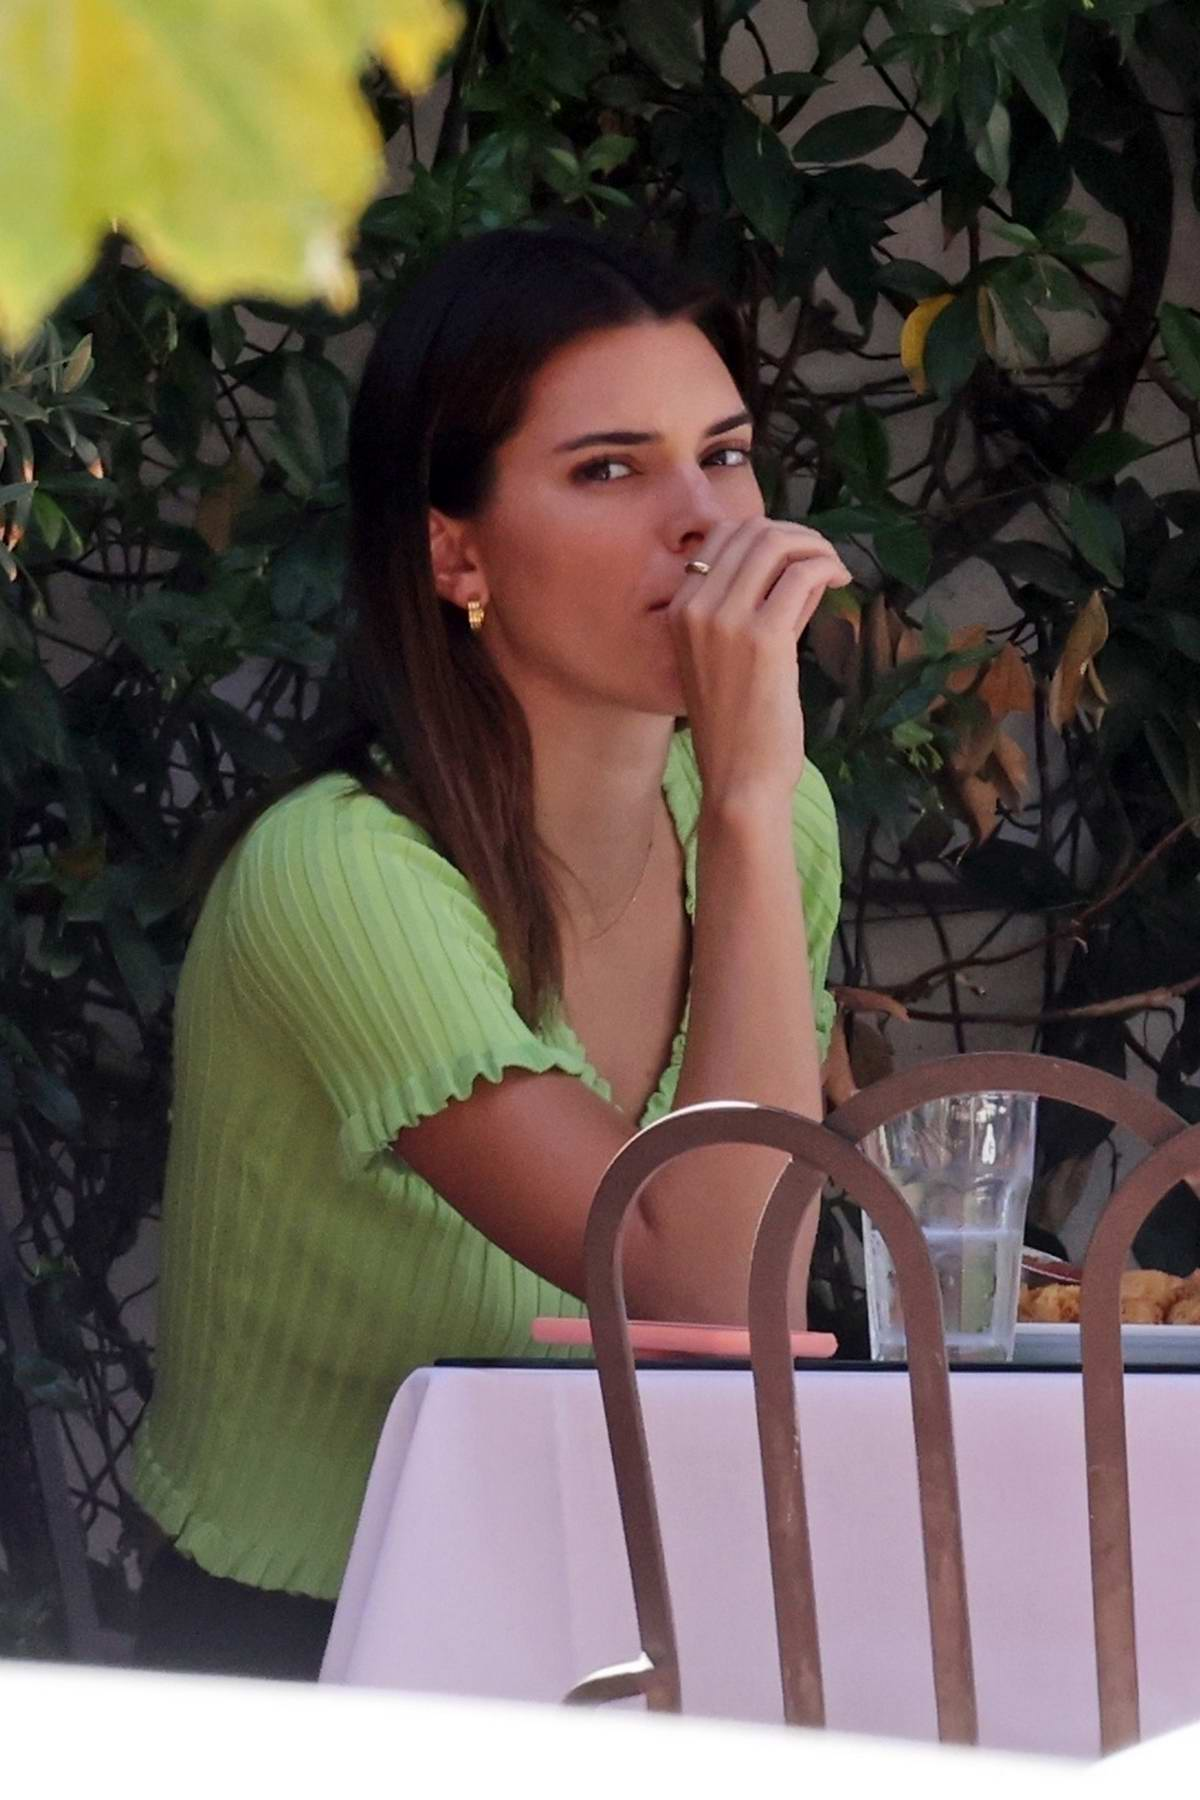 Kendall Jenner enjoys french fries & fish tacos with a friend at Taverna Tony in Malibu, California